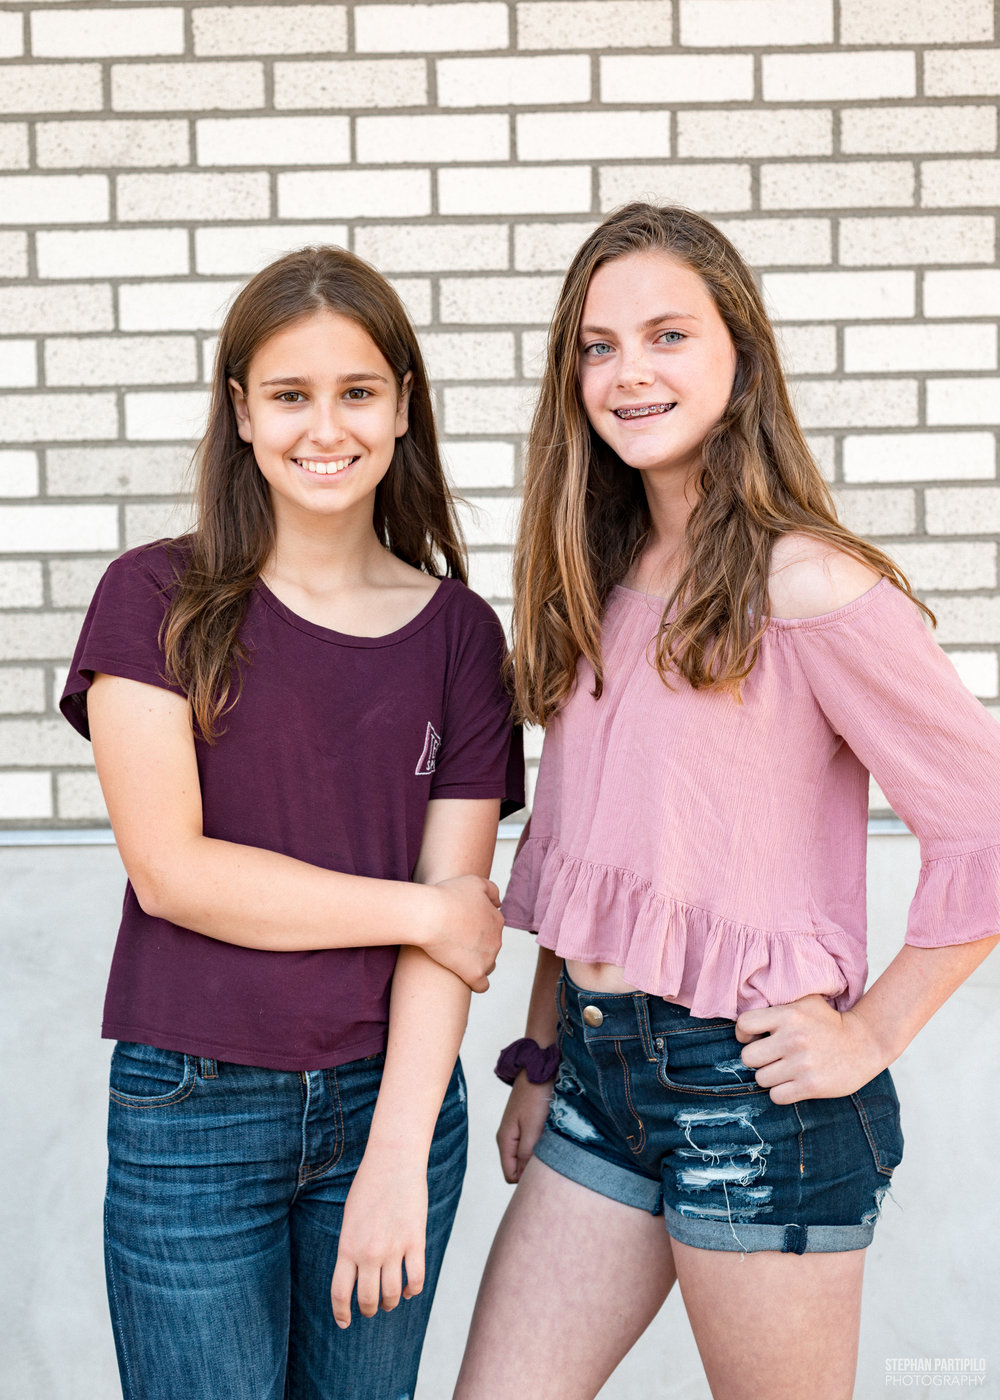 August 12 2018 Chloe & Grace Taylor 0G5A3112.jpg